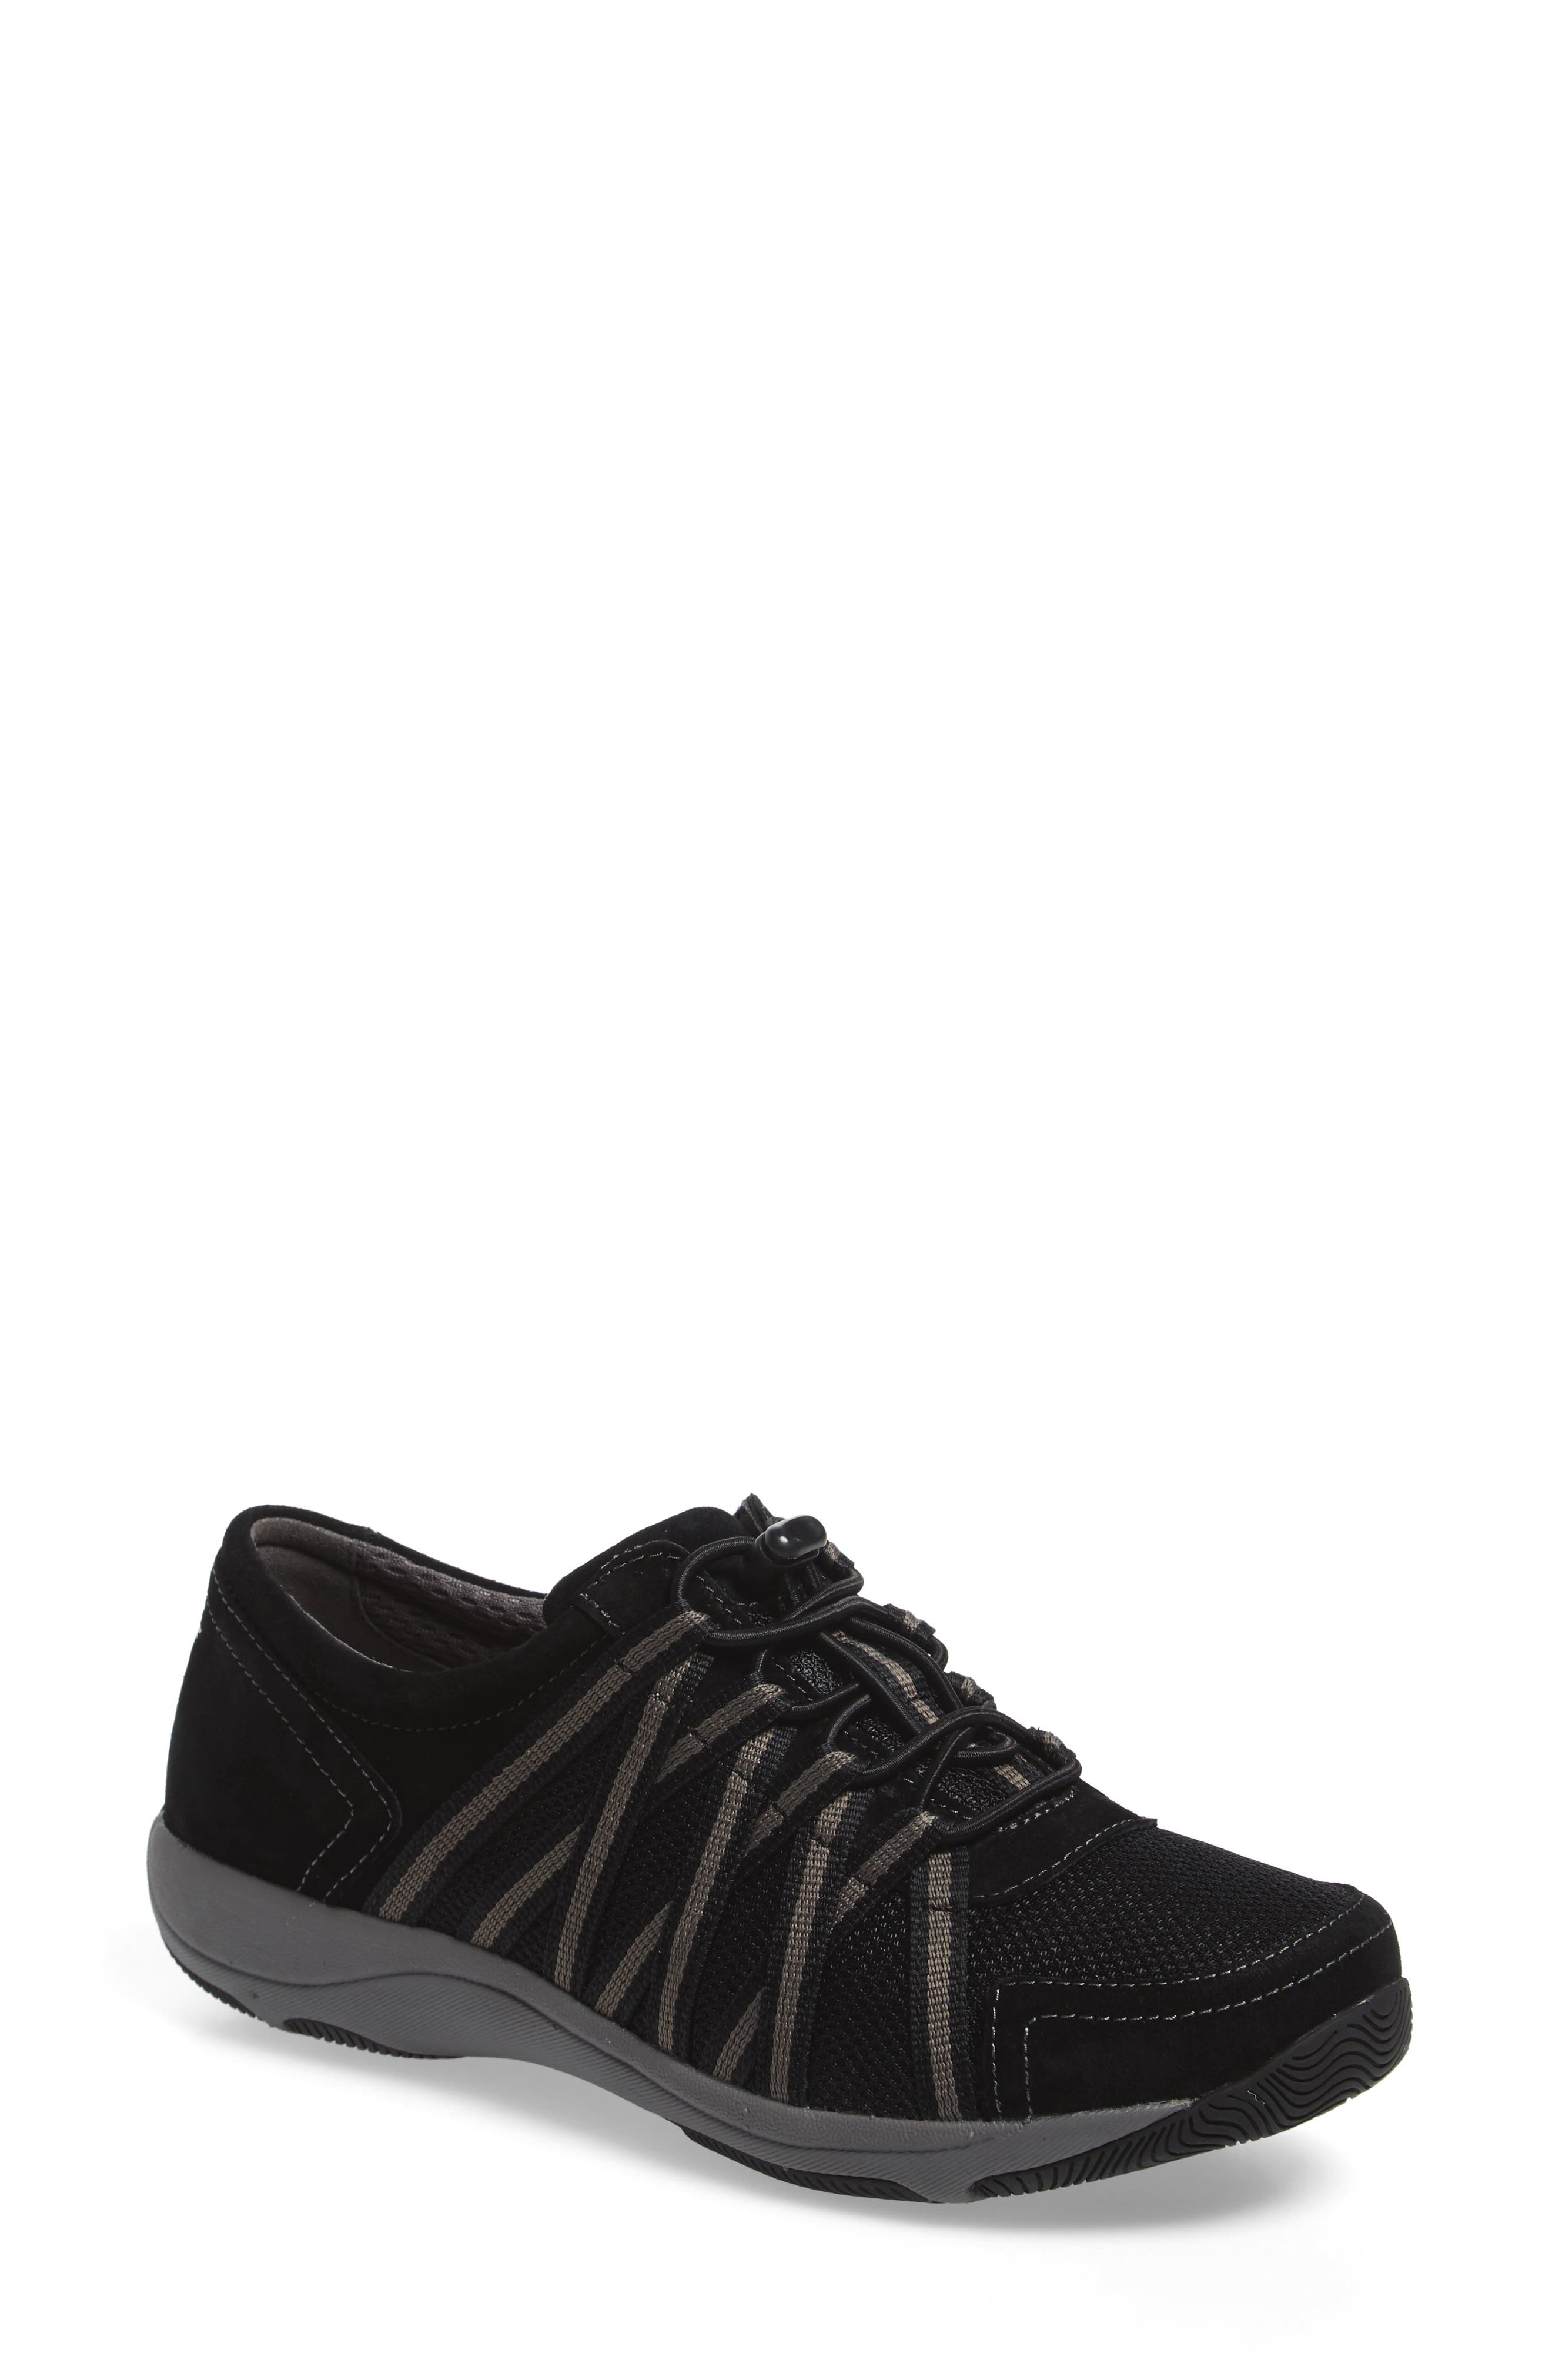 Halifax Collection Honor Sneaker,                             Main thumbnail 1, color,                             BLACK/ BLACK SUEDE